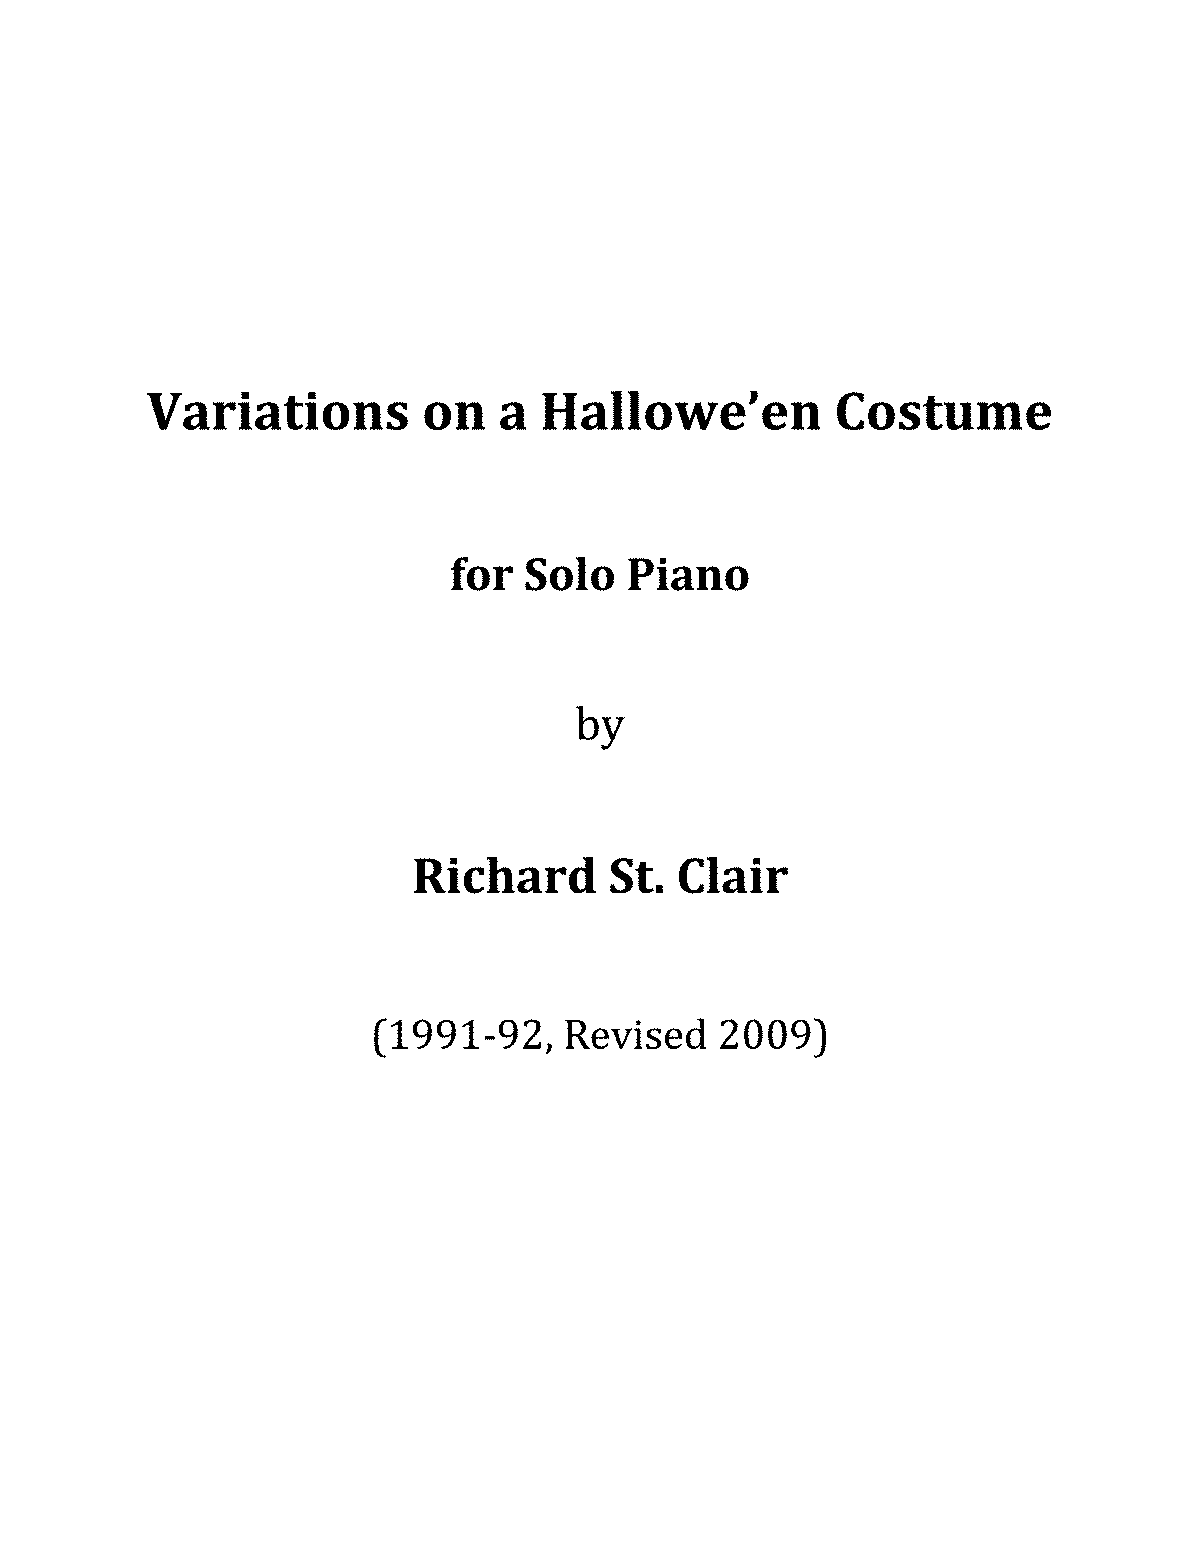 WIMA.3673-Variations-on-Halloween-Costume.pdf